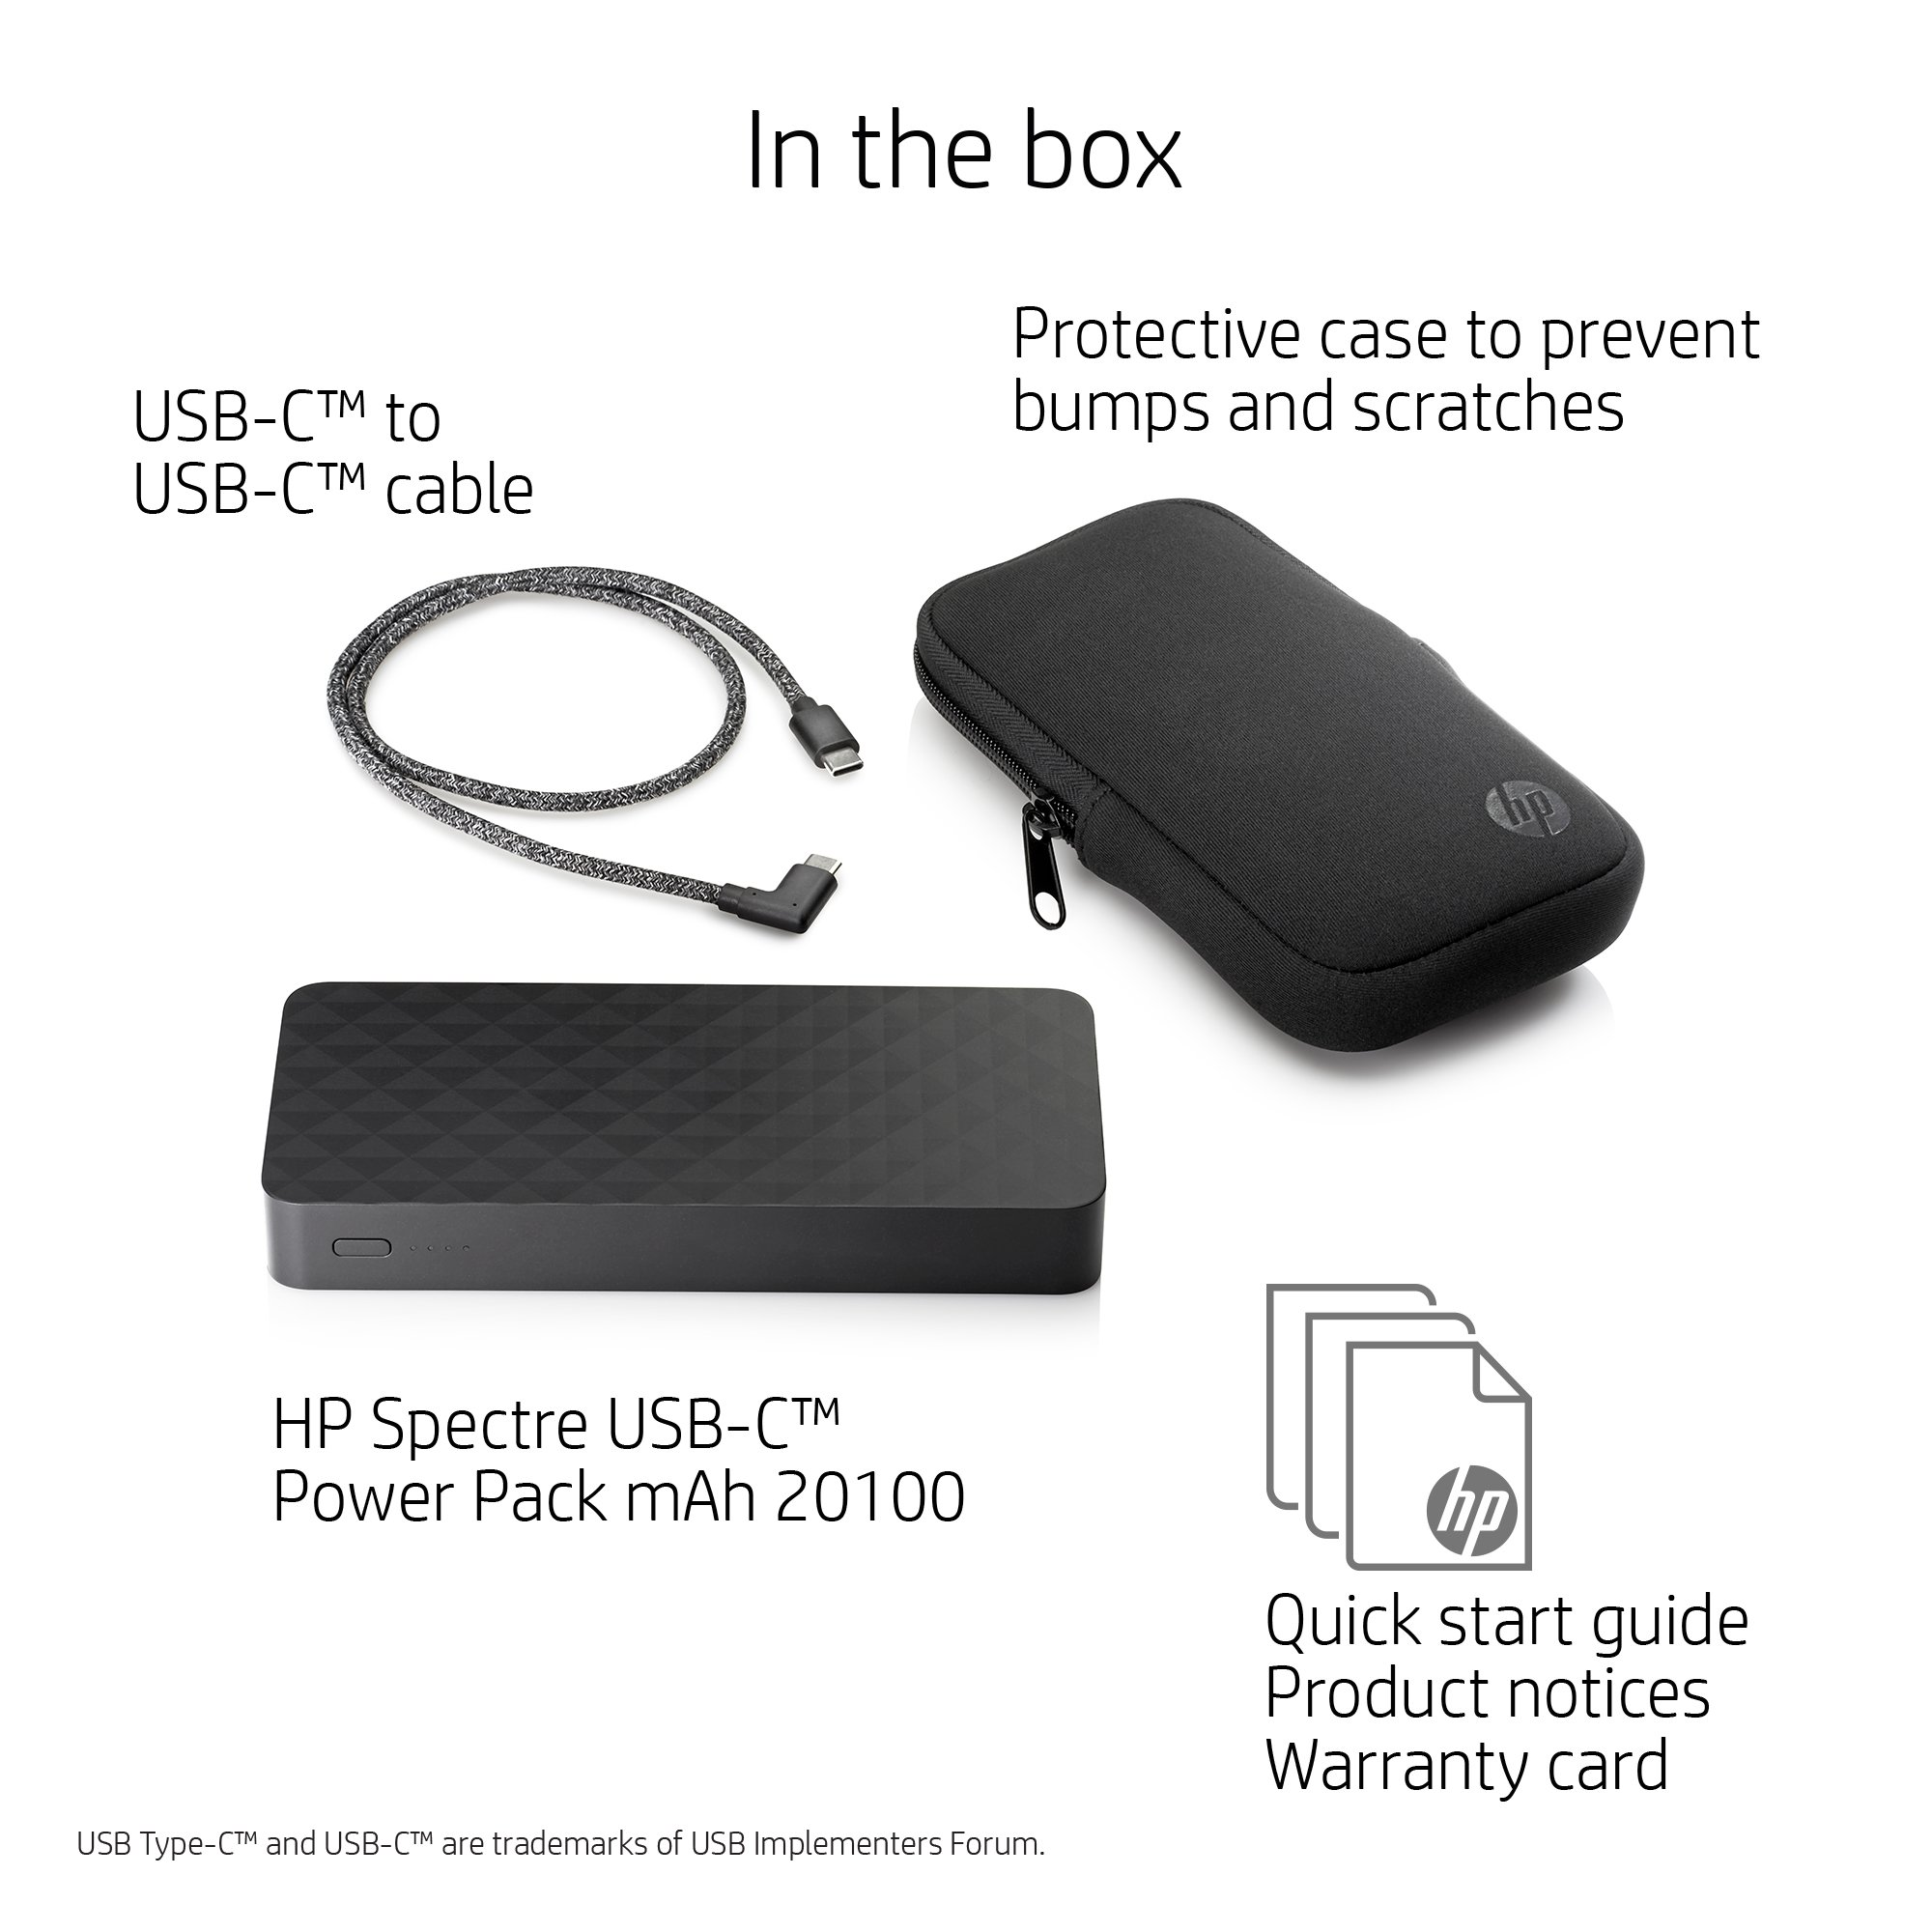 HP Spectre Power Pack 20,100 mAh for HP USB-C Charging Laptops and other devices (with two USB-C ports and a single USB-A port) by HP (Image #3)